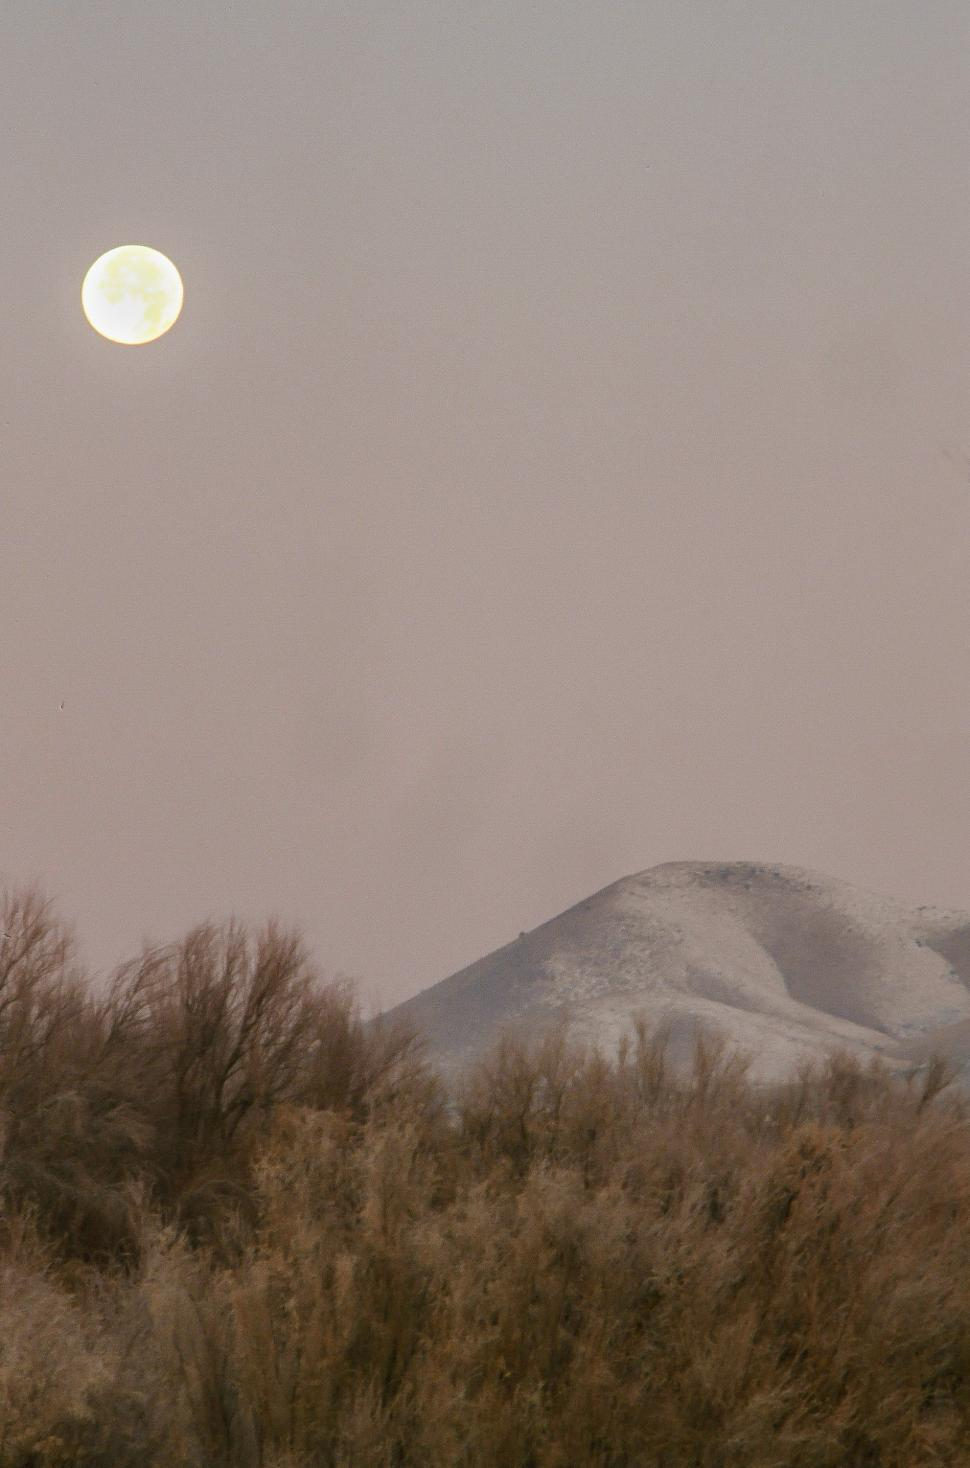 Download Free Stock Photo of Moonset at Bosque del Apache